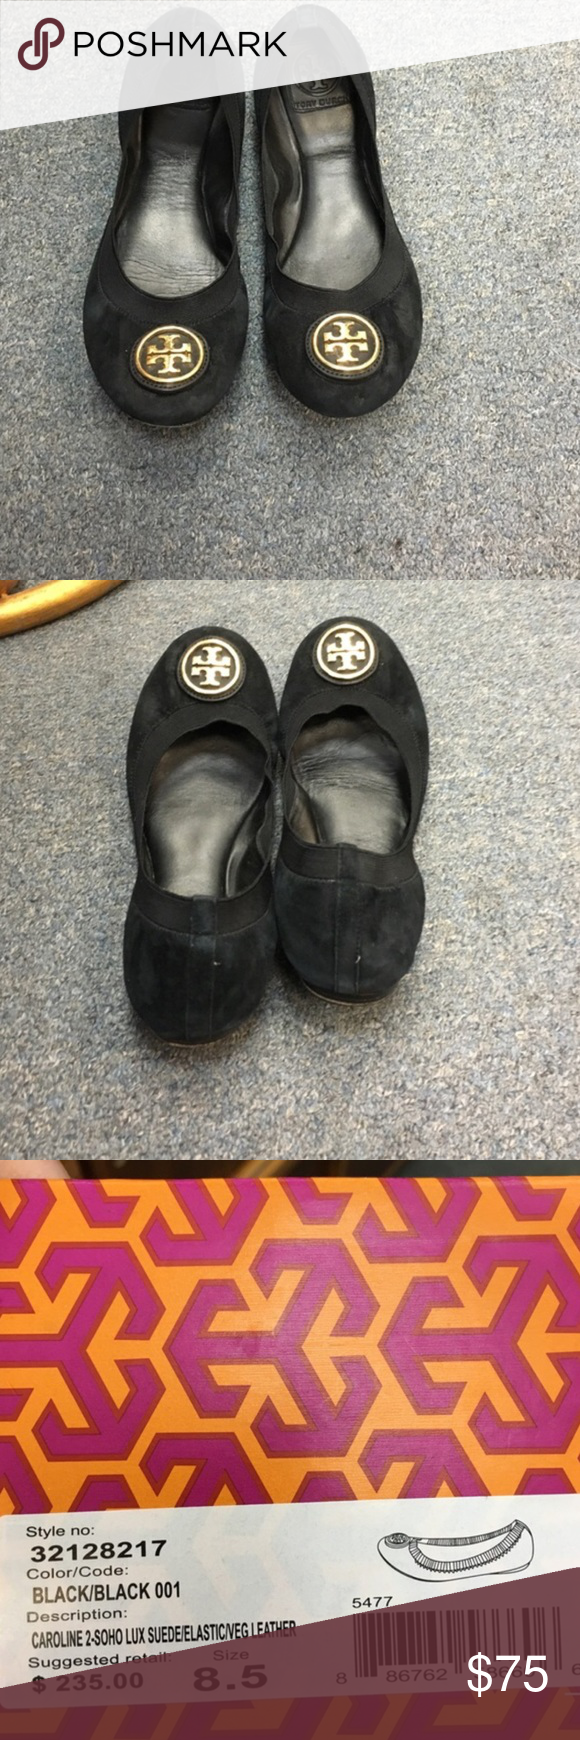 Tory Burch Caroline Flats This is a re-posh. I found a pair of black snake pattern Caroline's that I like much better. Just trying to recoup some of my money. Please ask questions. Tory Burch Shoes Flats & Loafers